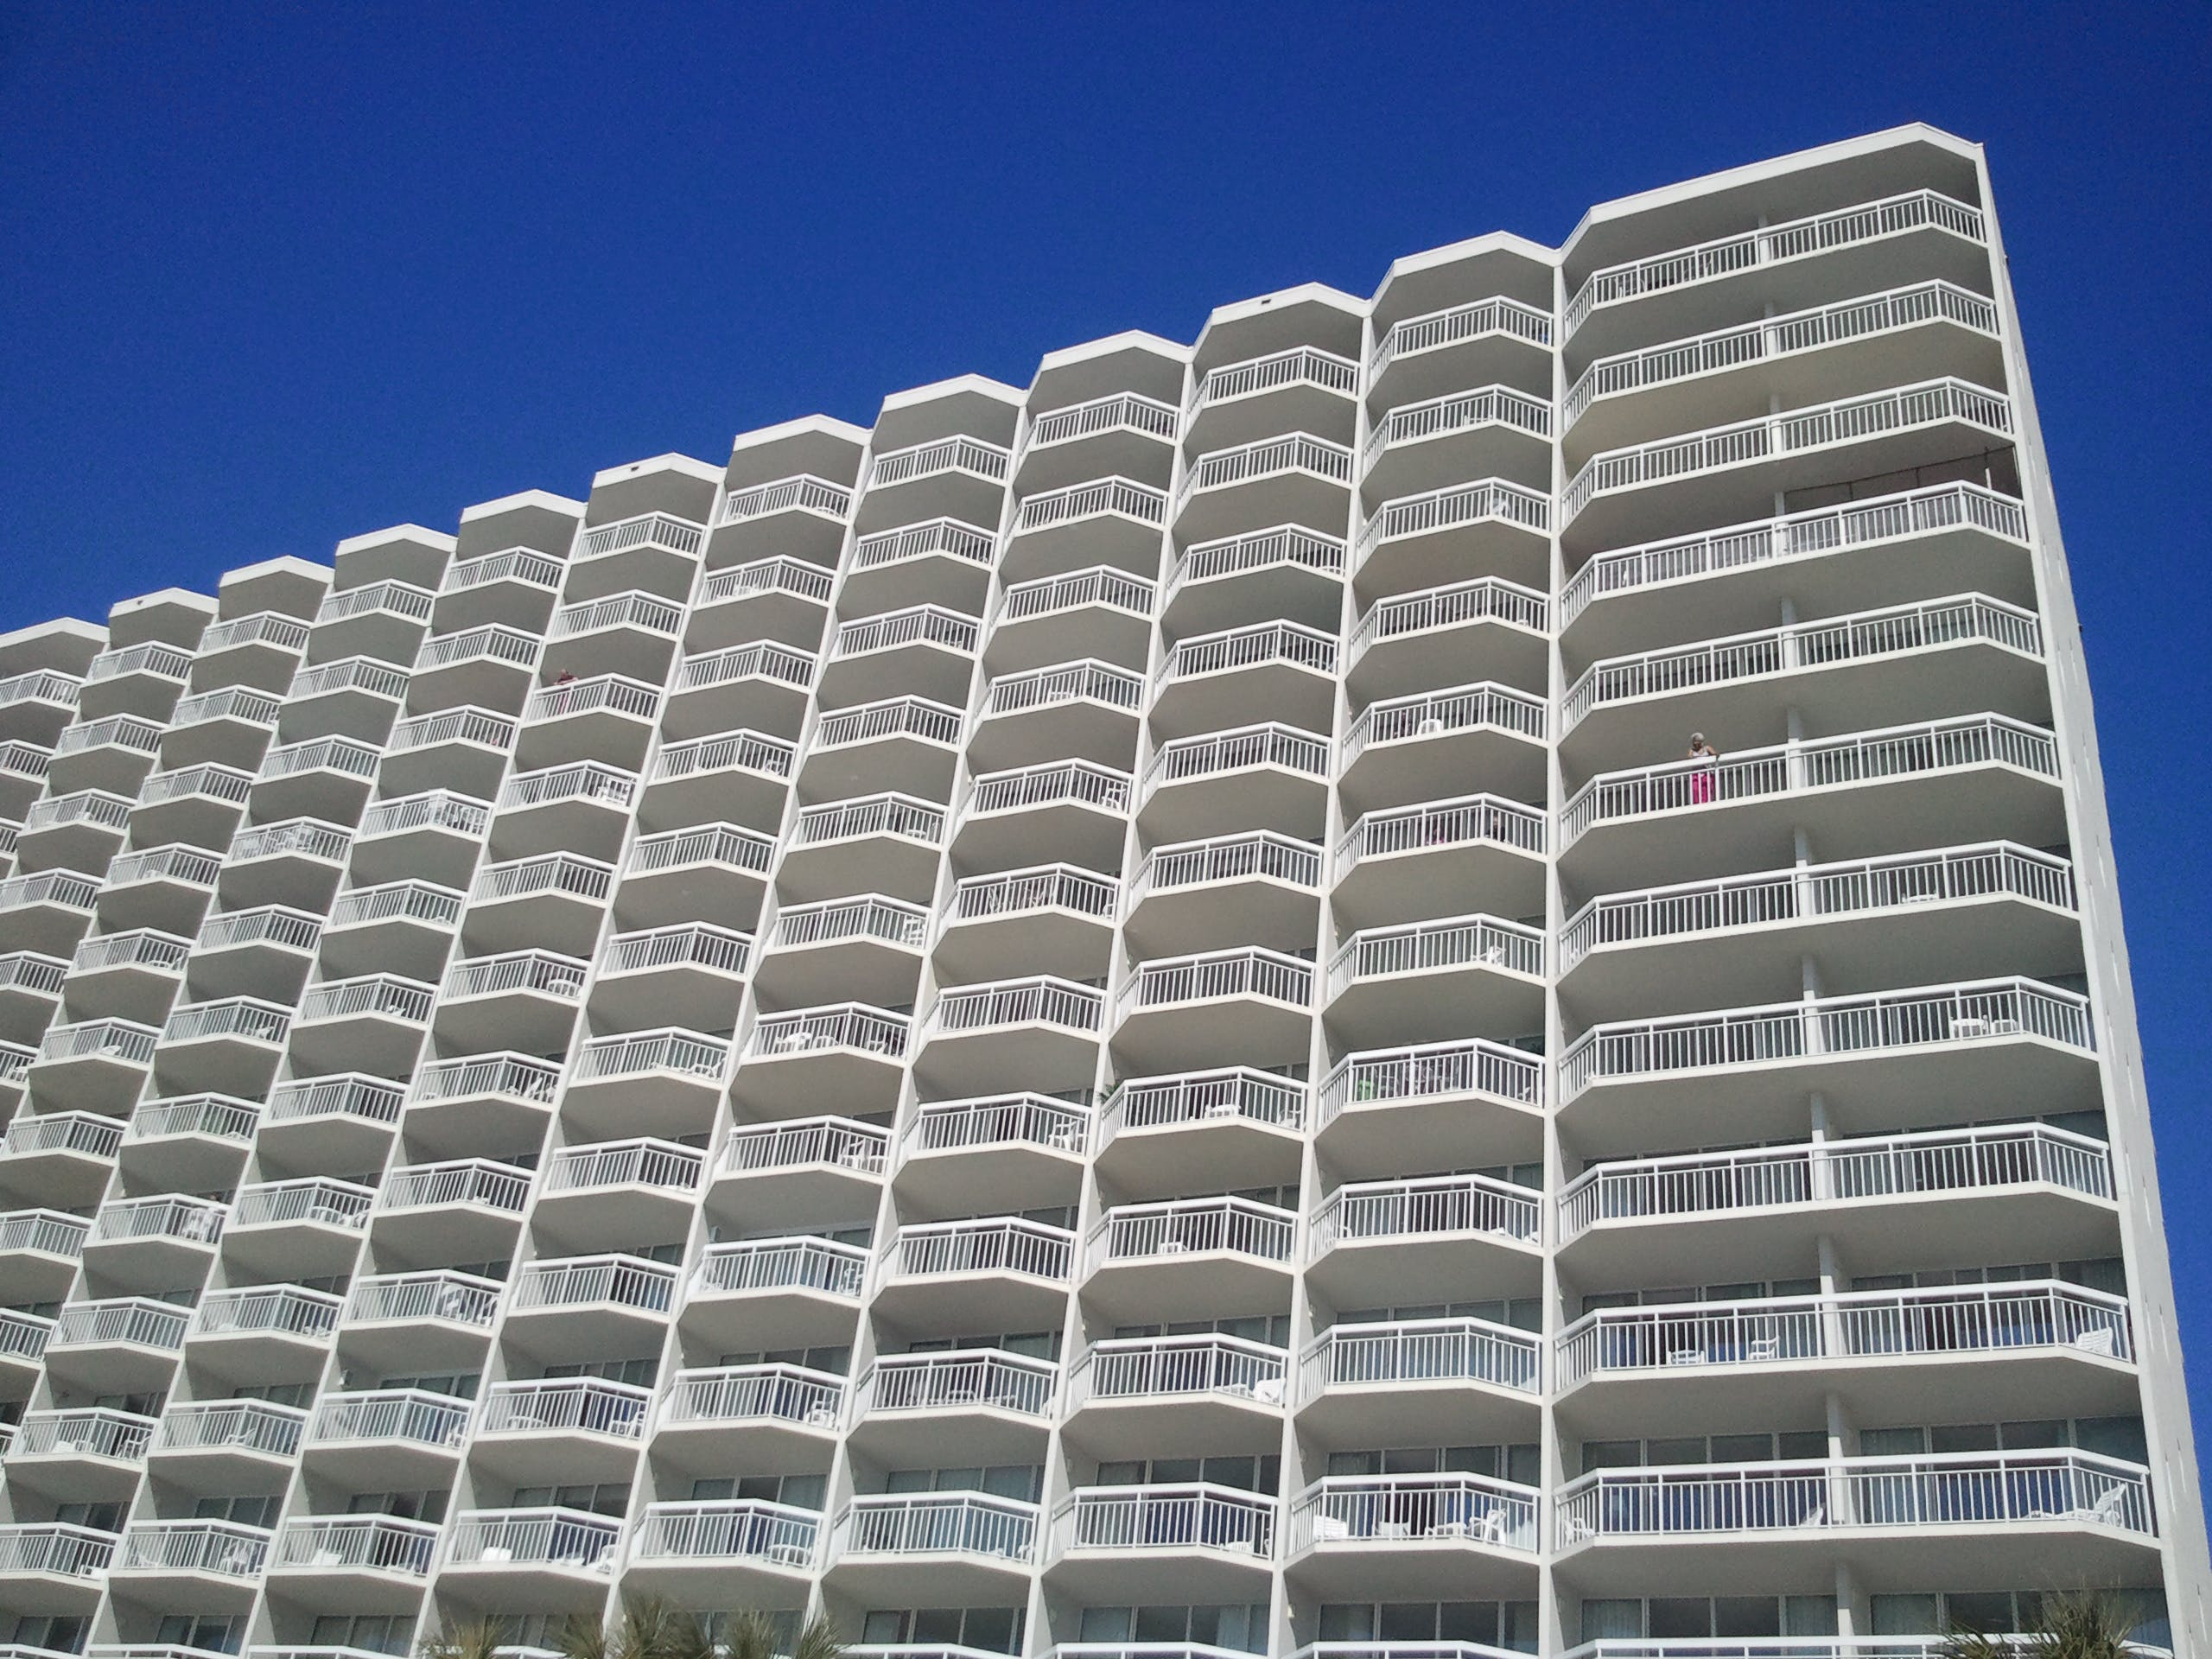 White Condominium Building Under Blue Sky